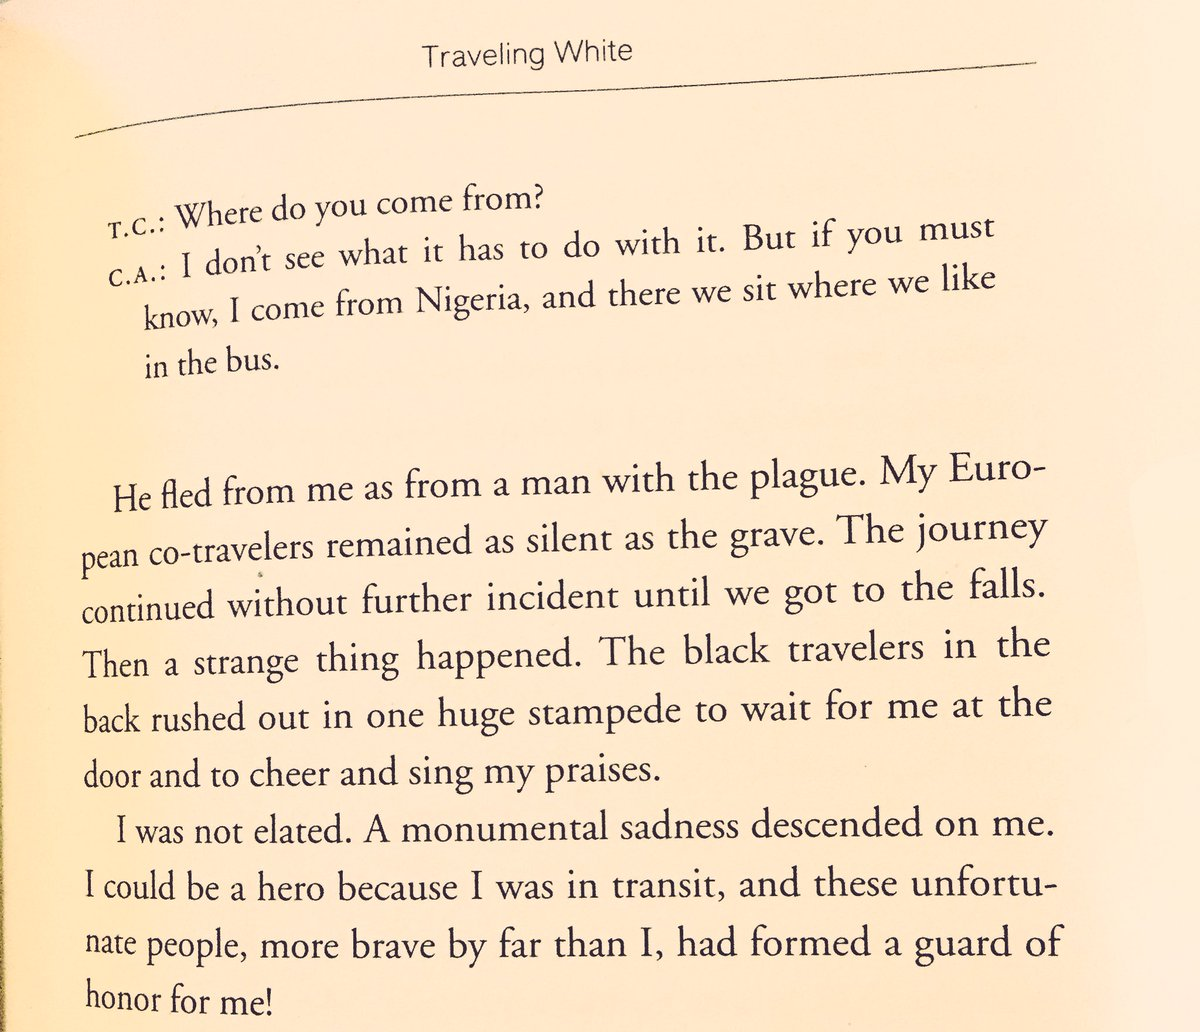 ayodele uche adiat nefrretiti twitter this from the essay traveling white by chinua achebe in which he boards a bus to victoria falls in oct 1960pic com gwmelxlj9e